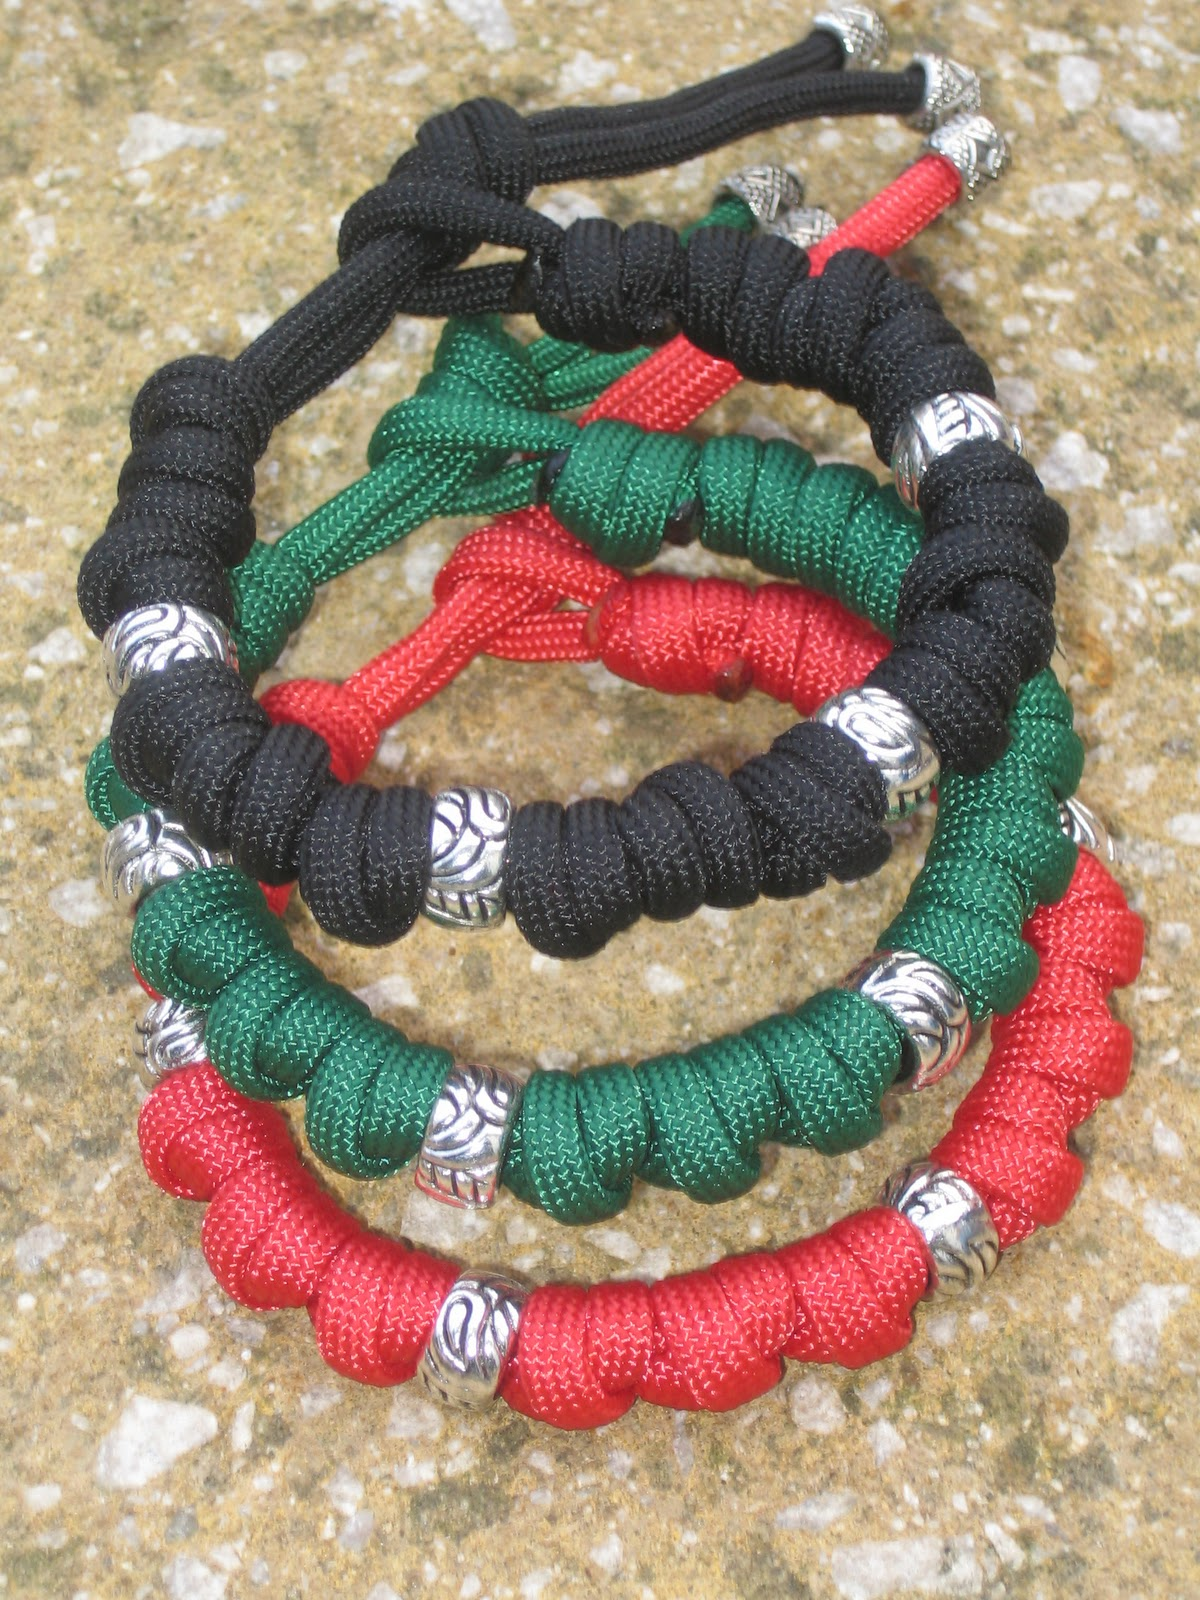 paracord projects Paracord projects step by step video instructions on how to create survival bracelets and other 550 paracord projects - page 2.